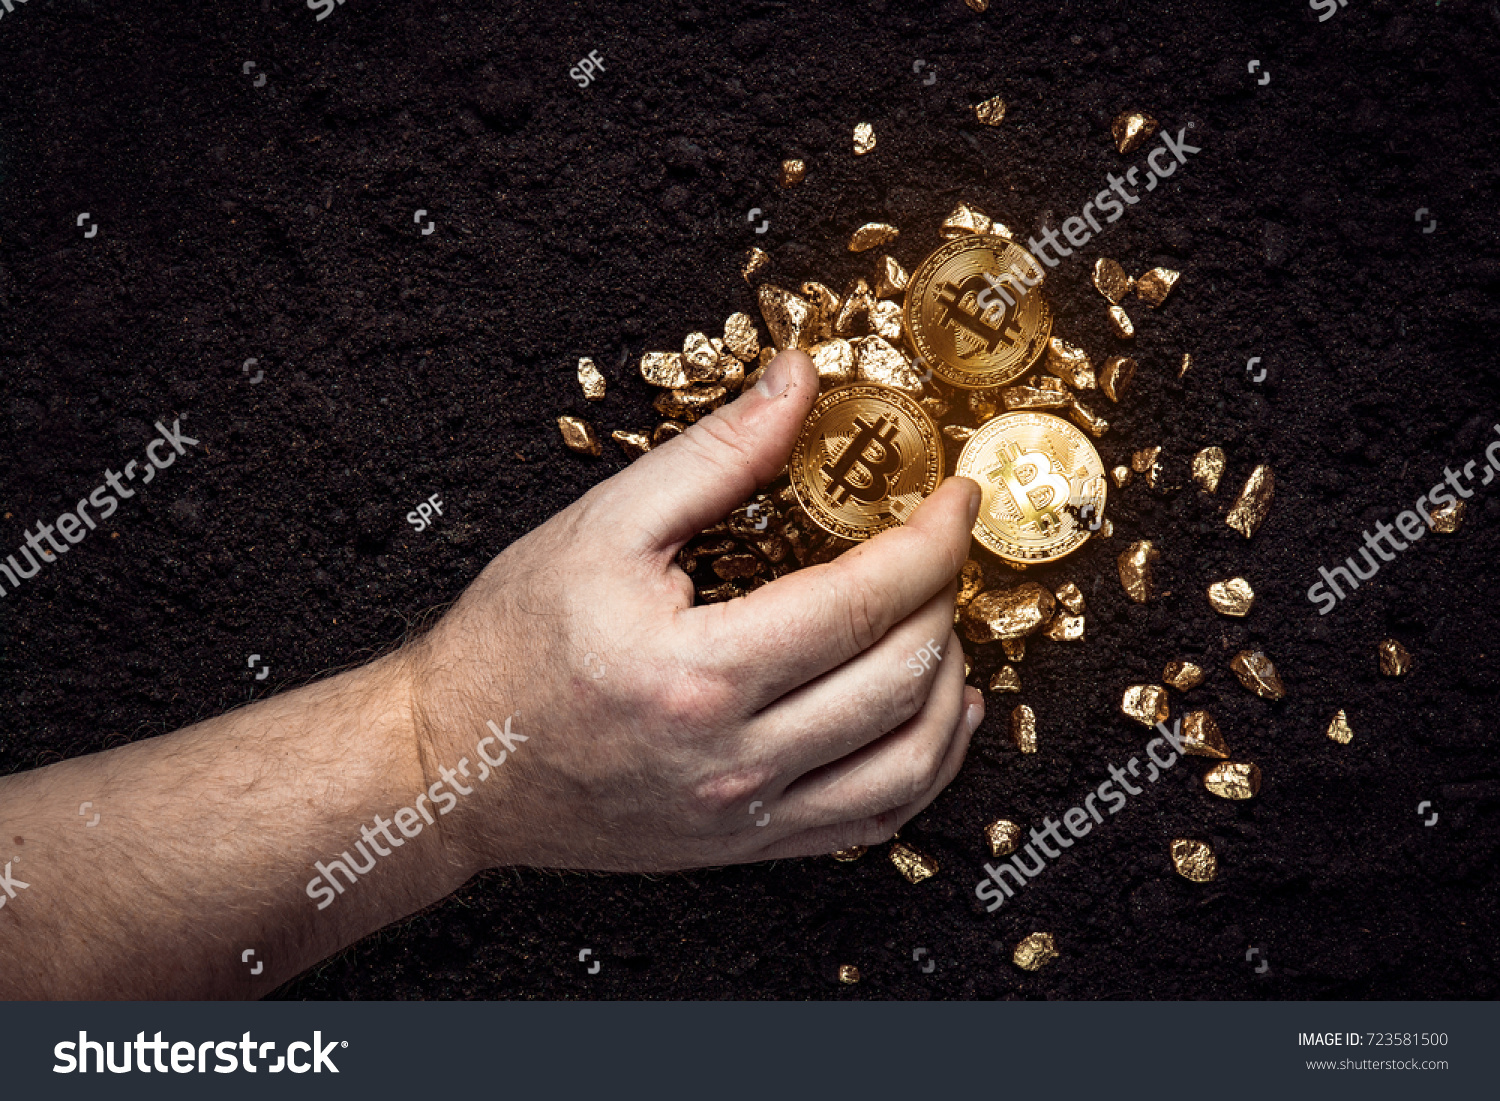 Gold Nuggets With A Bitcoin In The Hands Of Miner Mining Golden Bitcoins